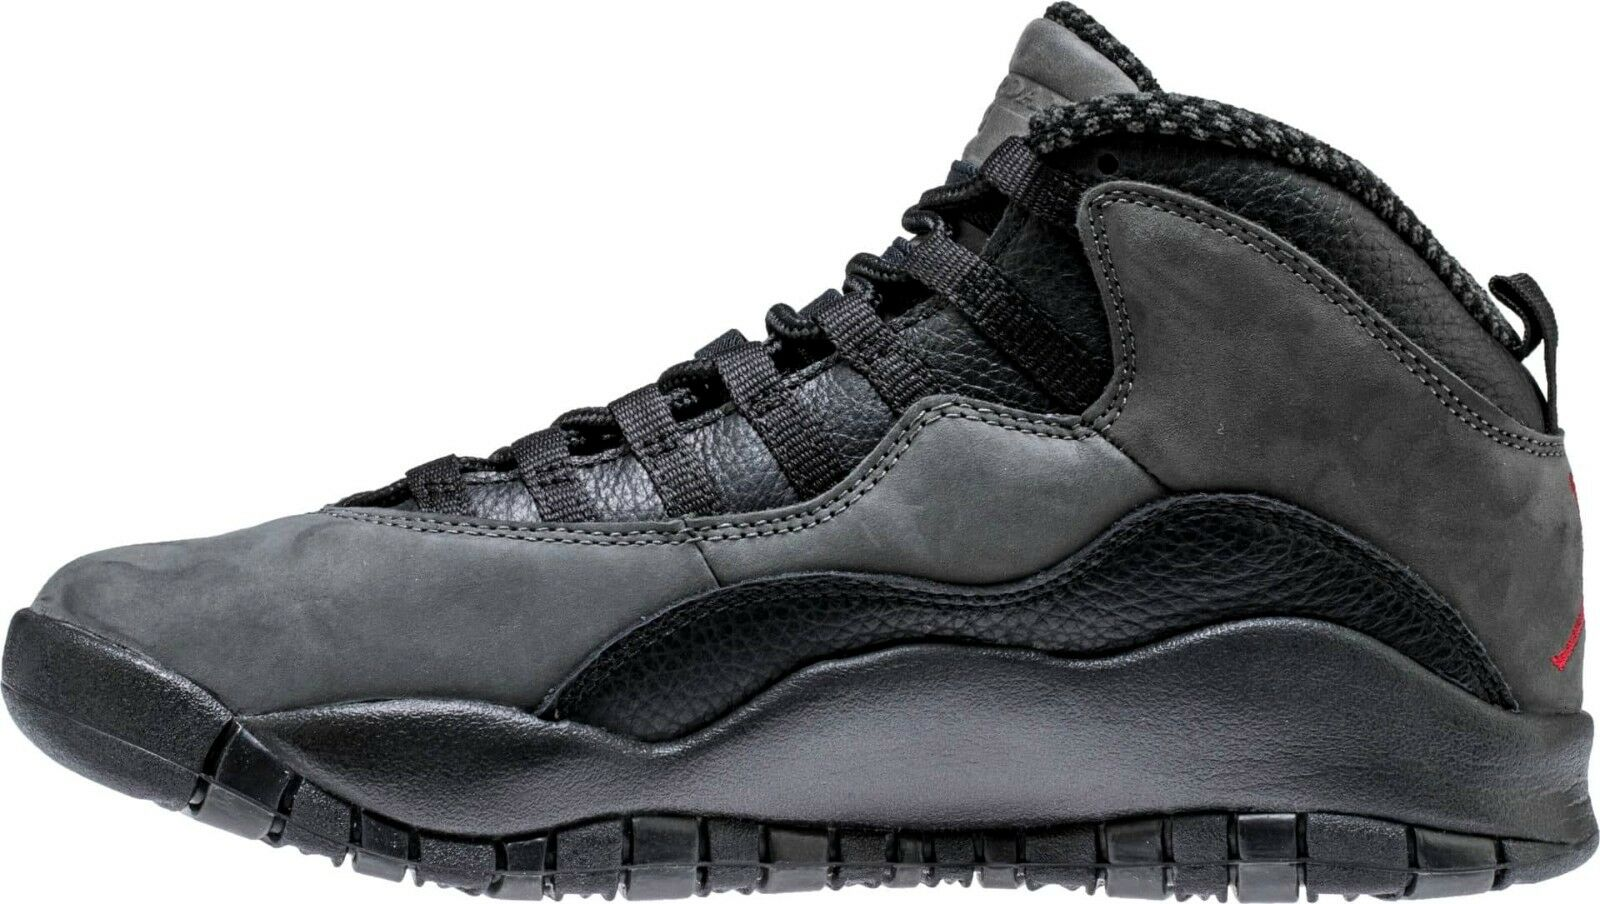 Air jordan 10 Retro X DARK SHADOW US MENS SIZES 310805-002